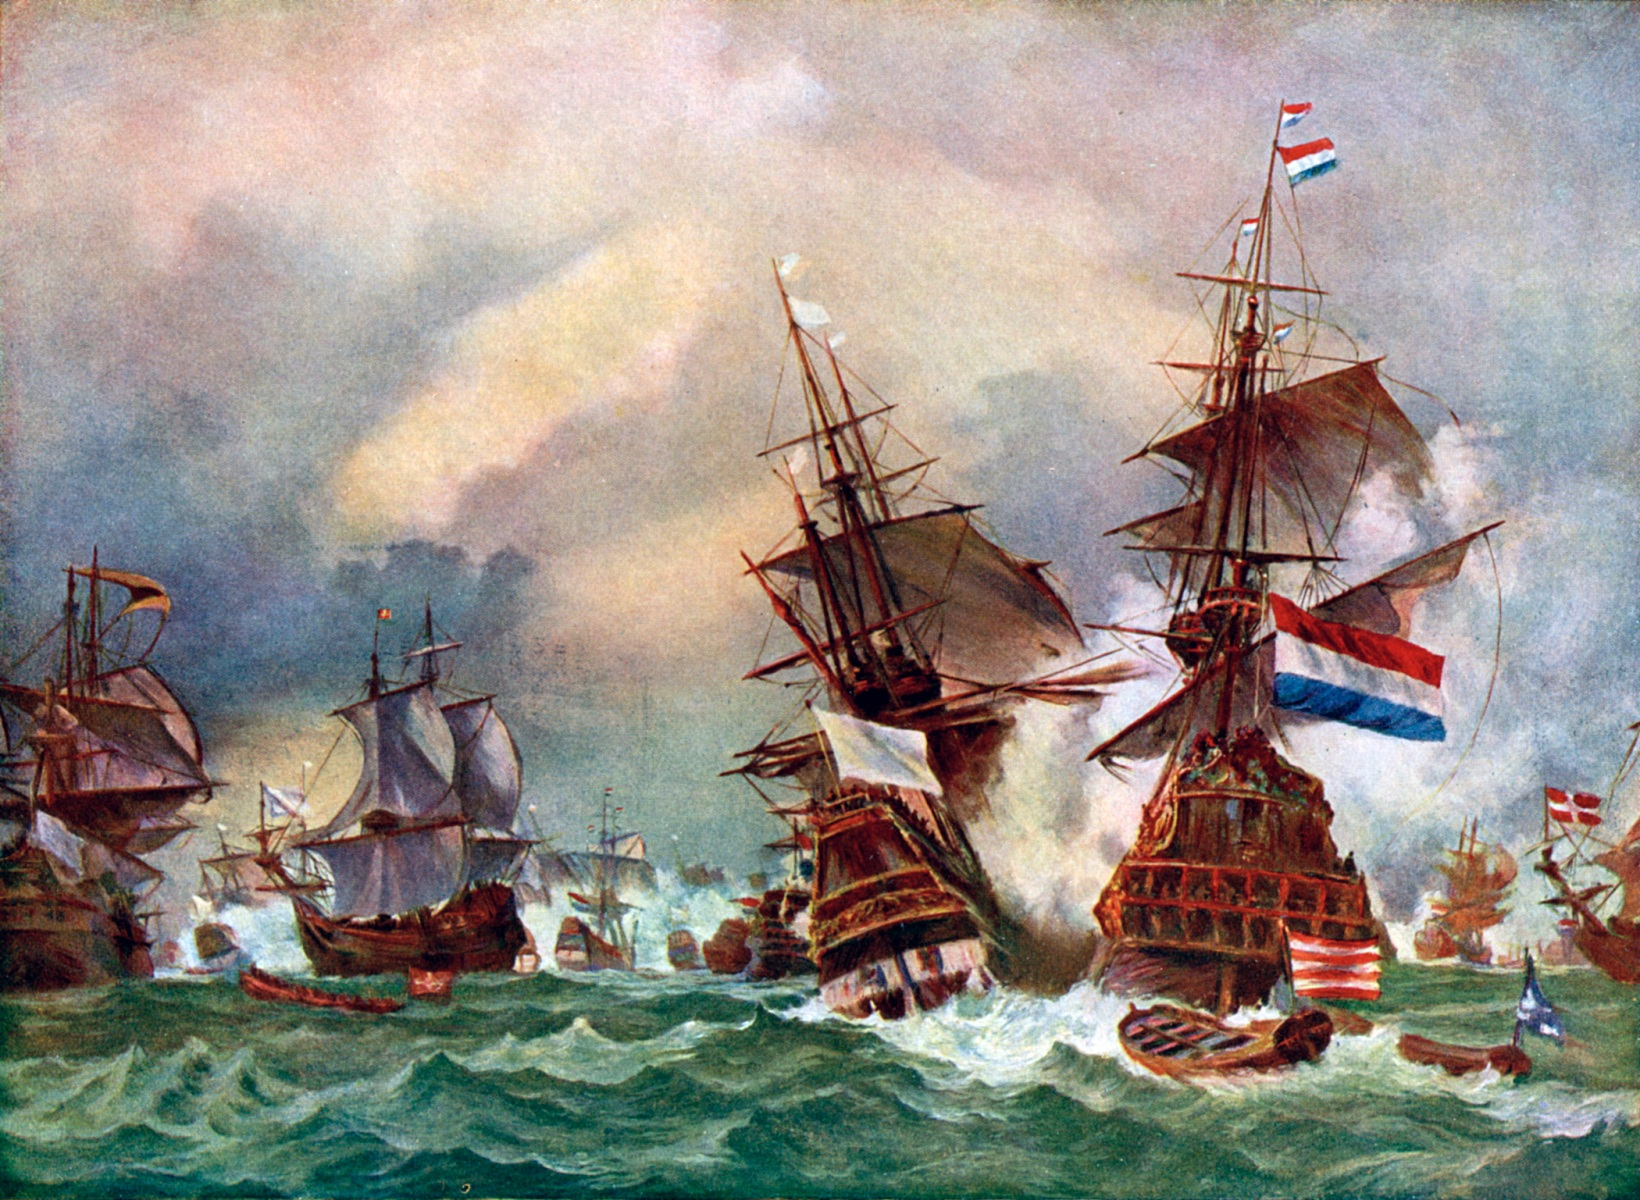 """The Battle of Texel, 1673 (c1920). In 1653, the Dutch admiral Maarten Tromp was killed in a battle with the English navy off the coast of Texel, Holland. Illustration from Story of the British Nation, volume III, by Walter Hutchinson (London, c1920s). The term """"going Dutch"""" has its origins in contentious 17th Century British-Dutch relations. (Photo by The Print Collector/Print Collector/Getty Images)"""